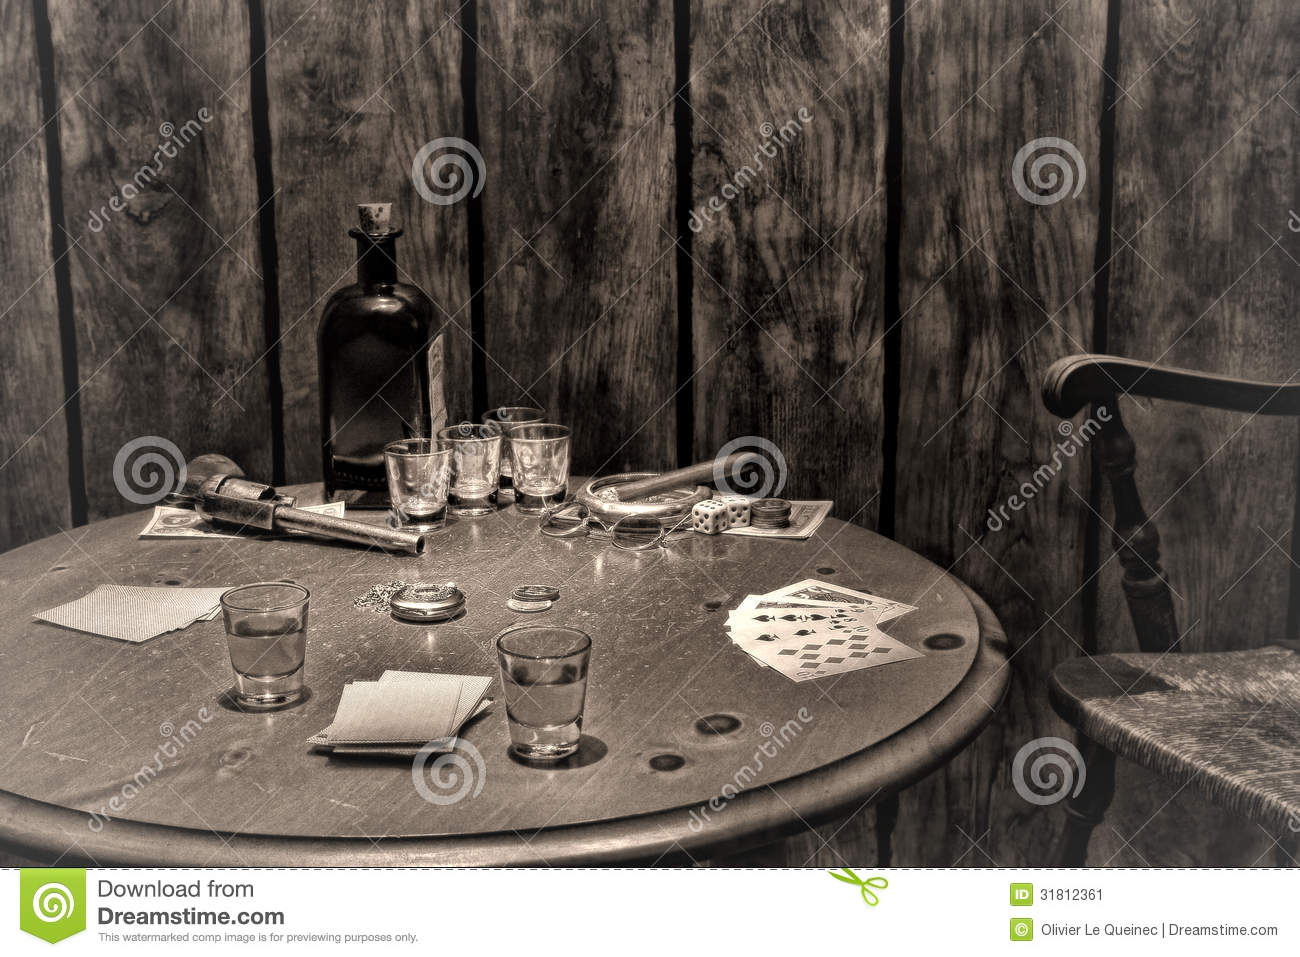 American West Legend Antique Saloon Gambling Table Stock Image - Image: 31812361